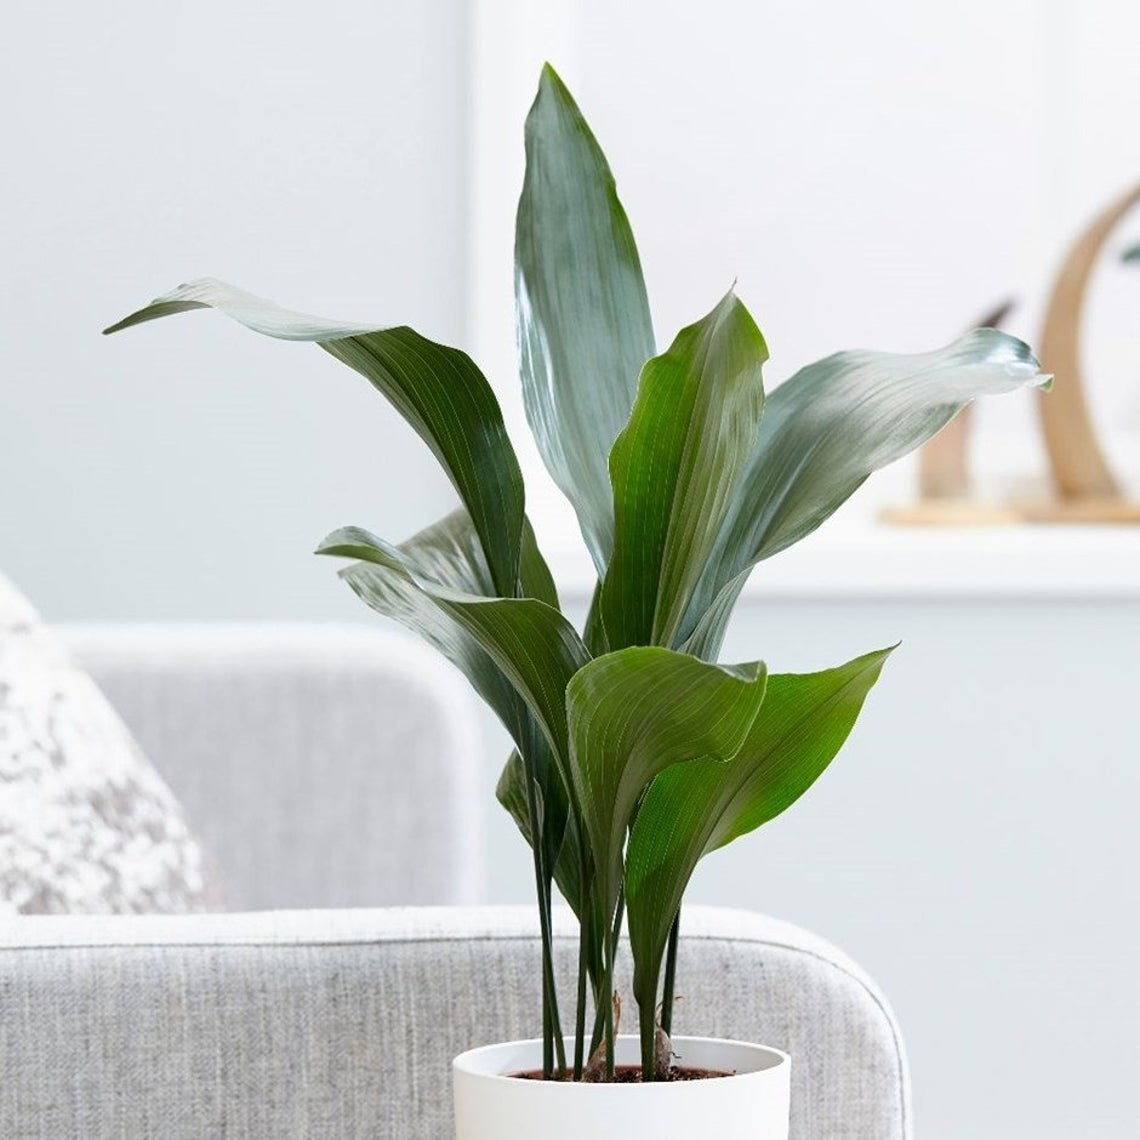 Tall potted plant with several large leaves